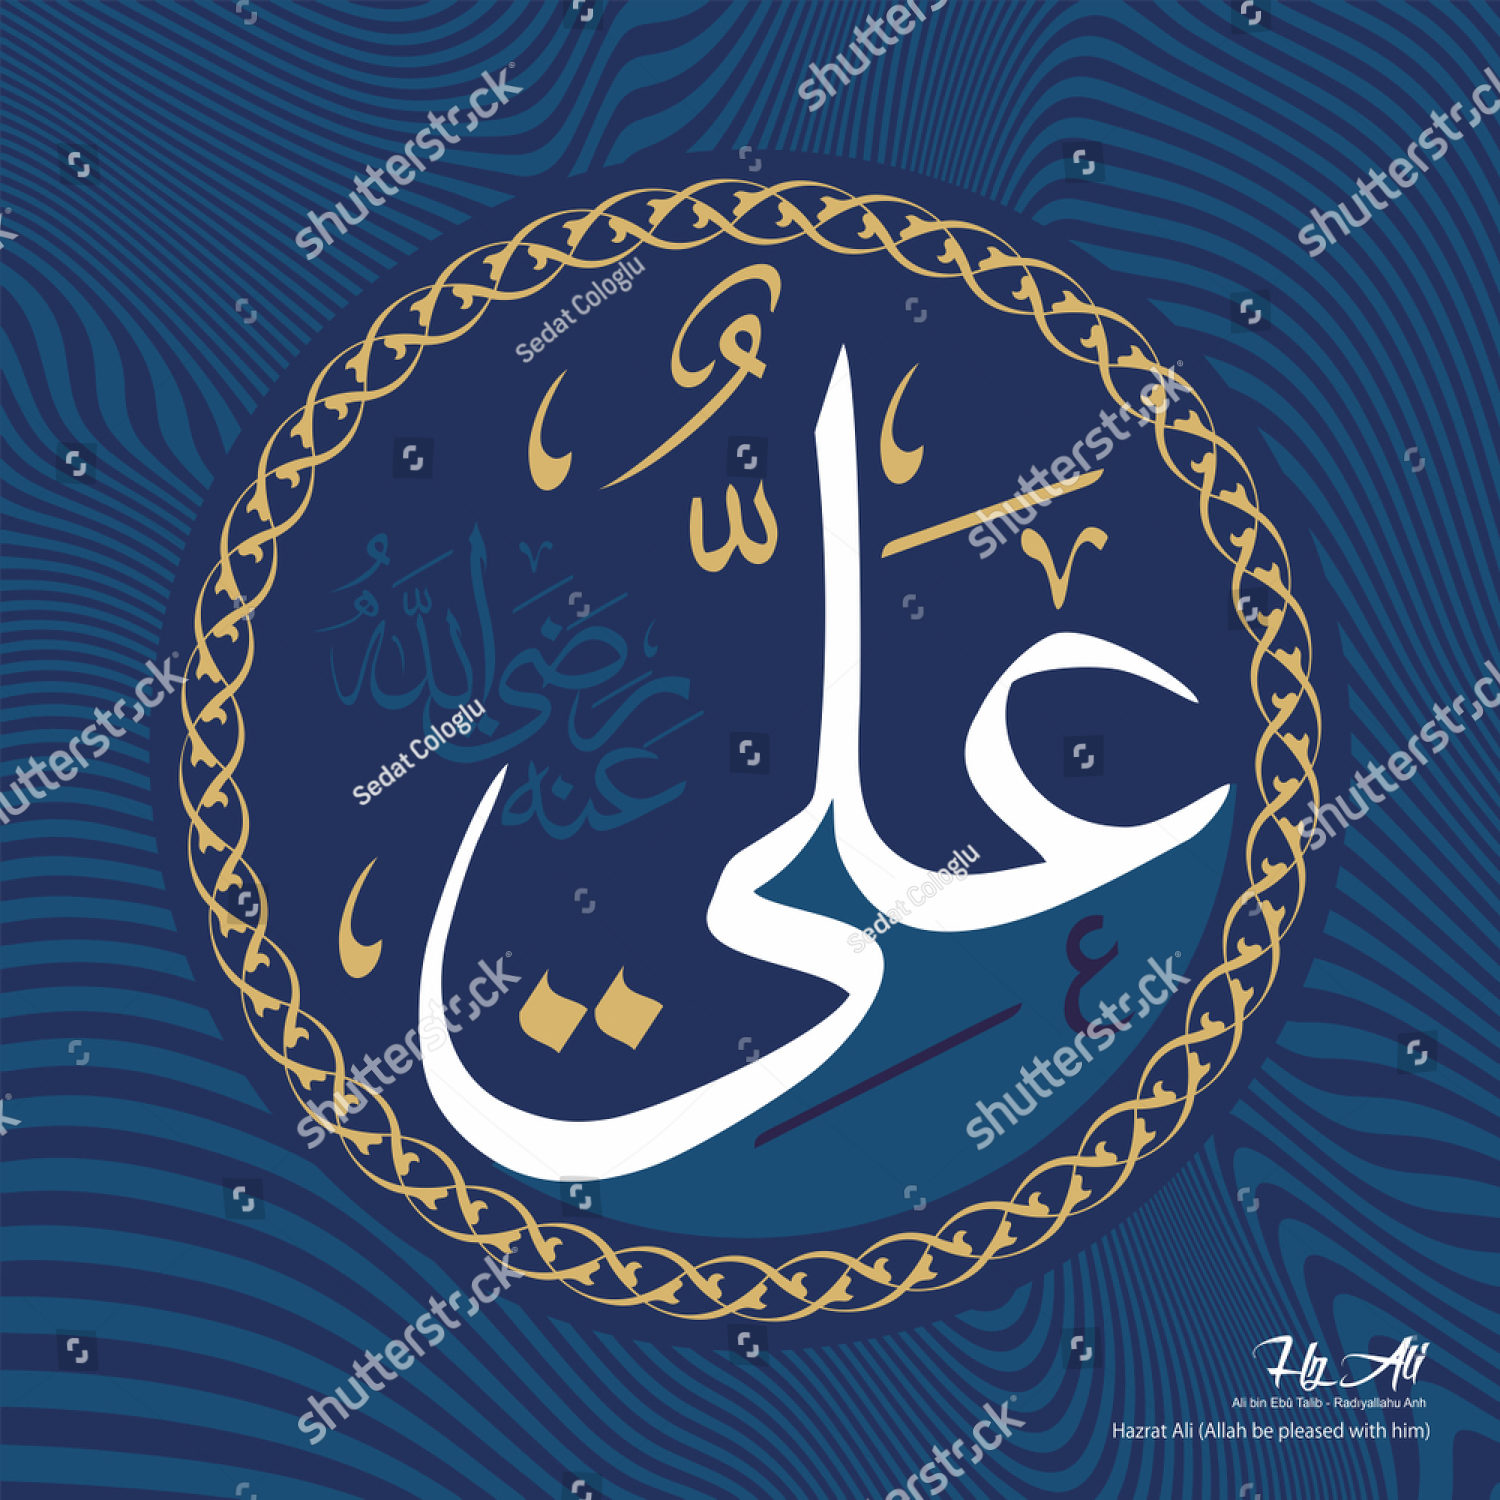 stock-vector-caliph-imam-ali-arabic-hazrat-ali-allah-is-pleased-with-him-written-for-mosque-and-islamic-1342259048